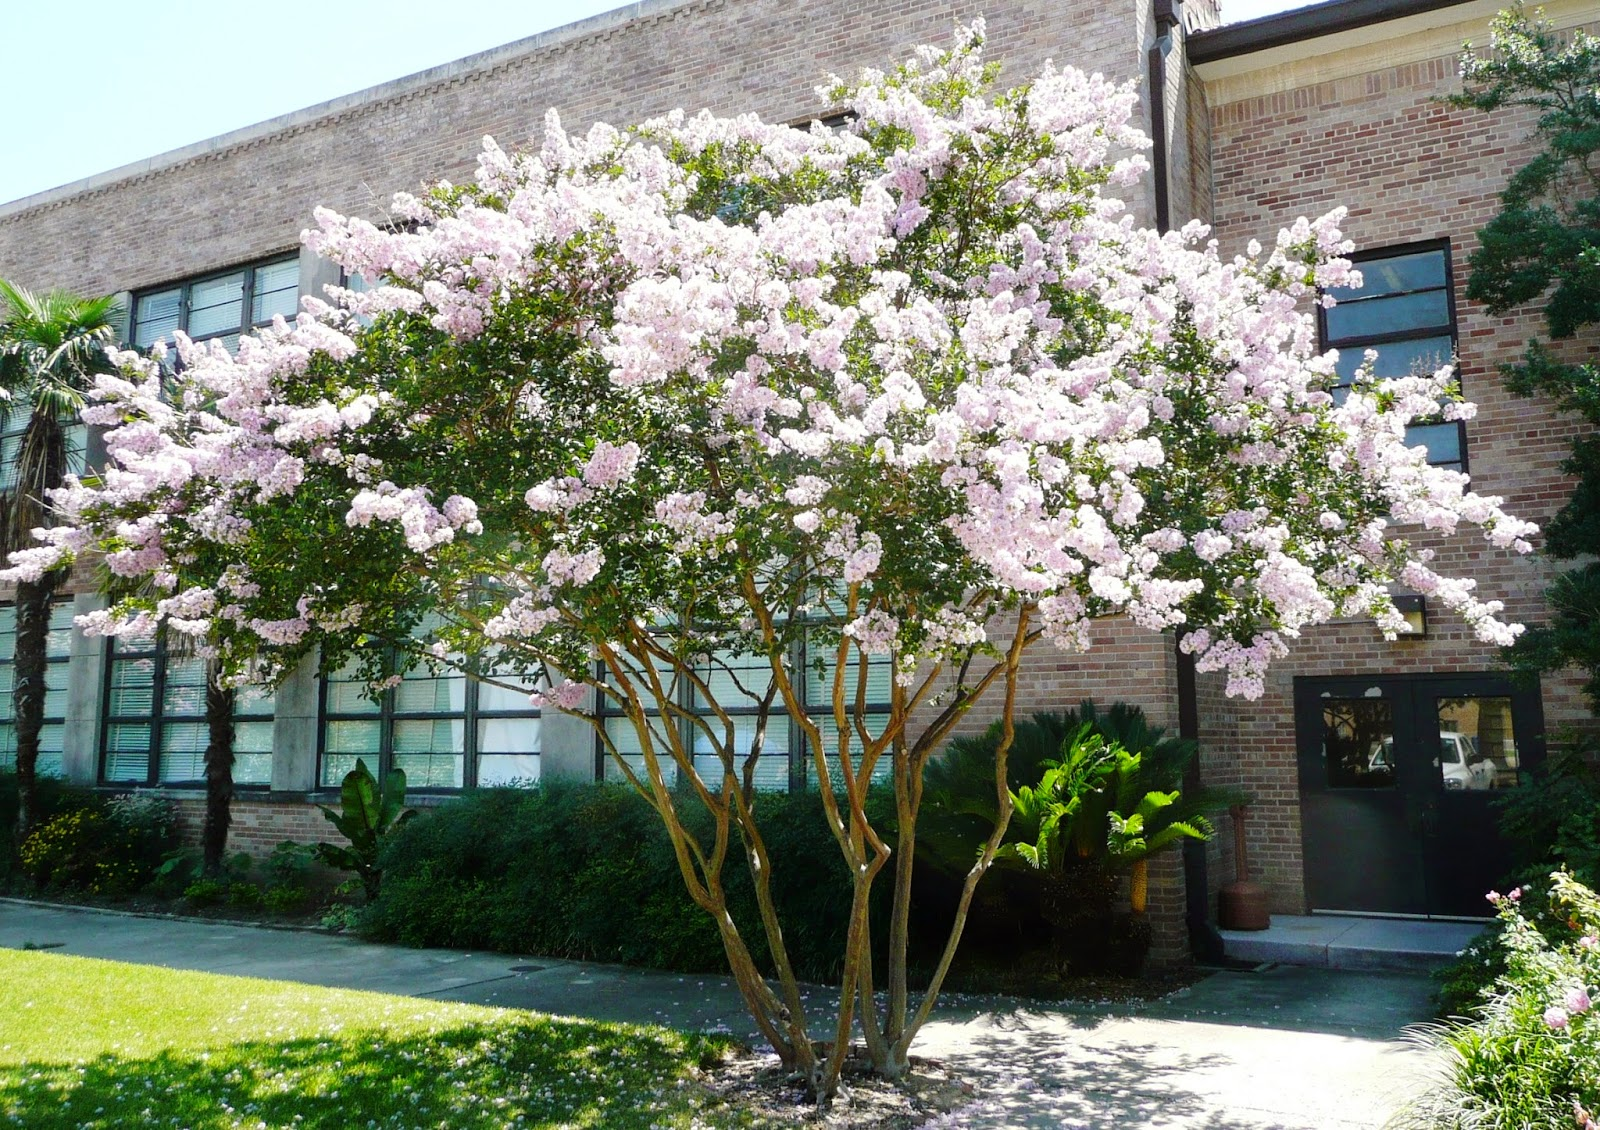 Allergena texas trees crape myrtle beautifully flowering trees because of the large size of the pollen from this tree you will not expereince allergic reactions from the existence of this tree in your landscaping mightylinksfo